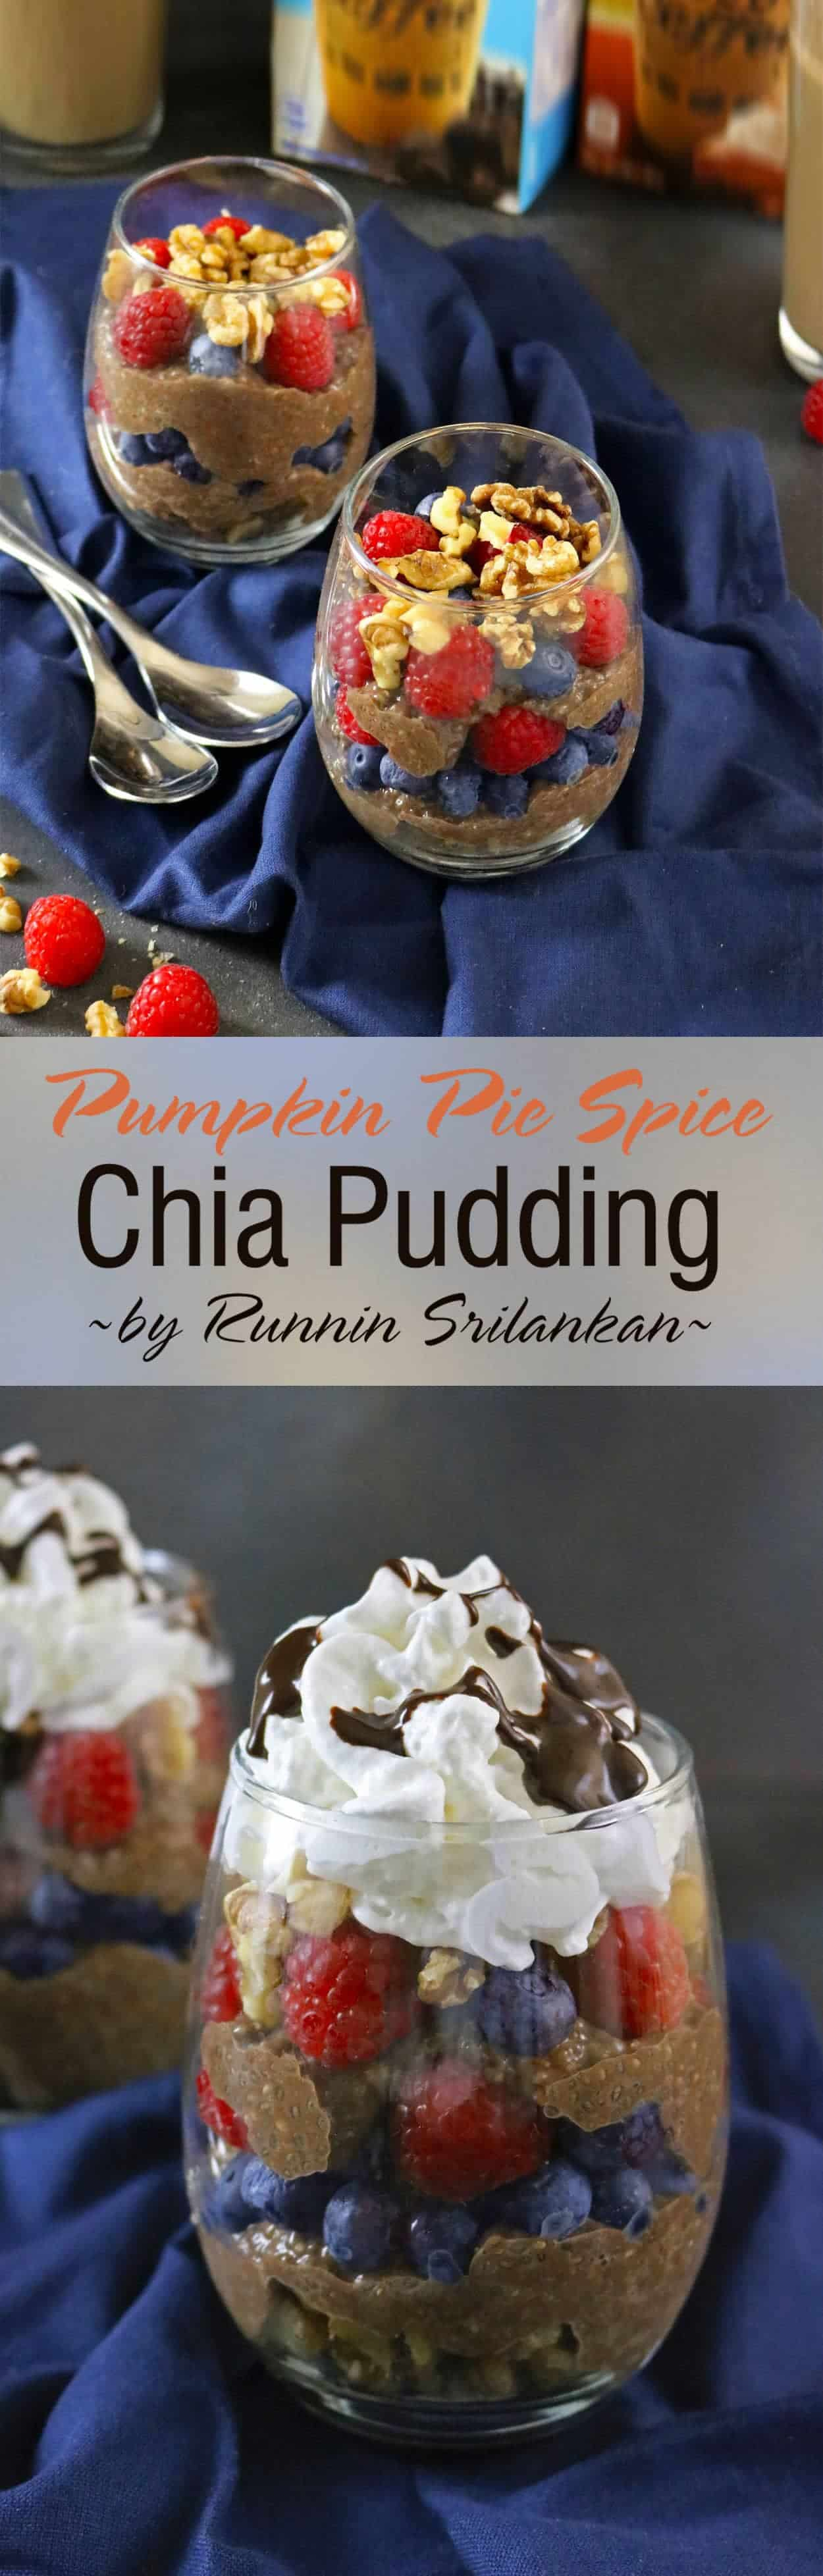 Pumpkin Pie Spice Chia Pudding #foundmydelight